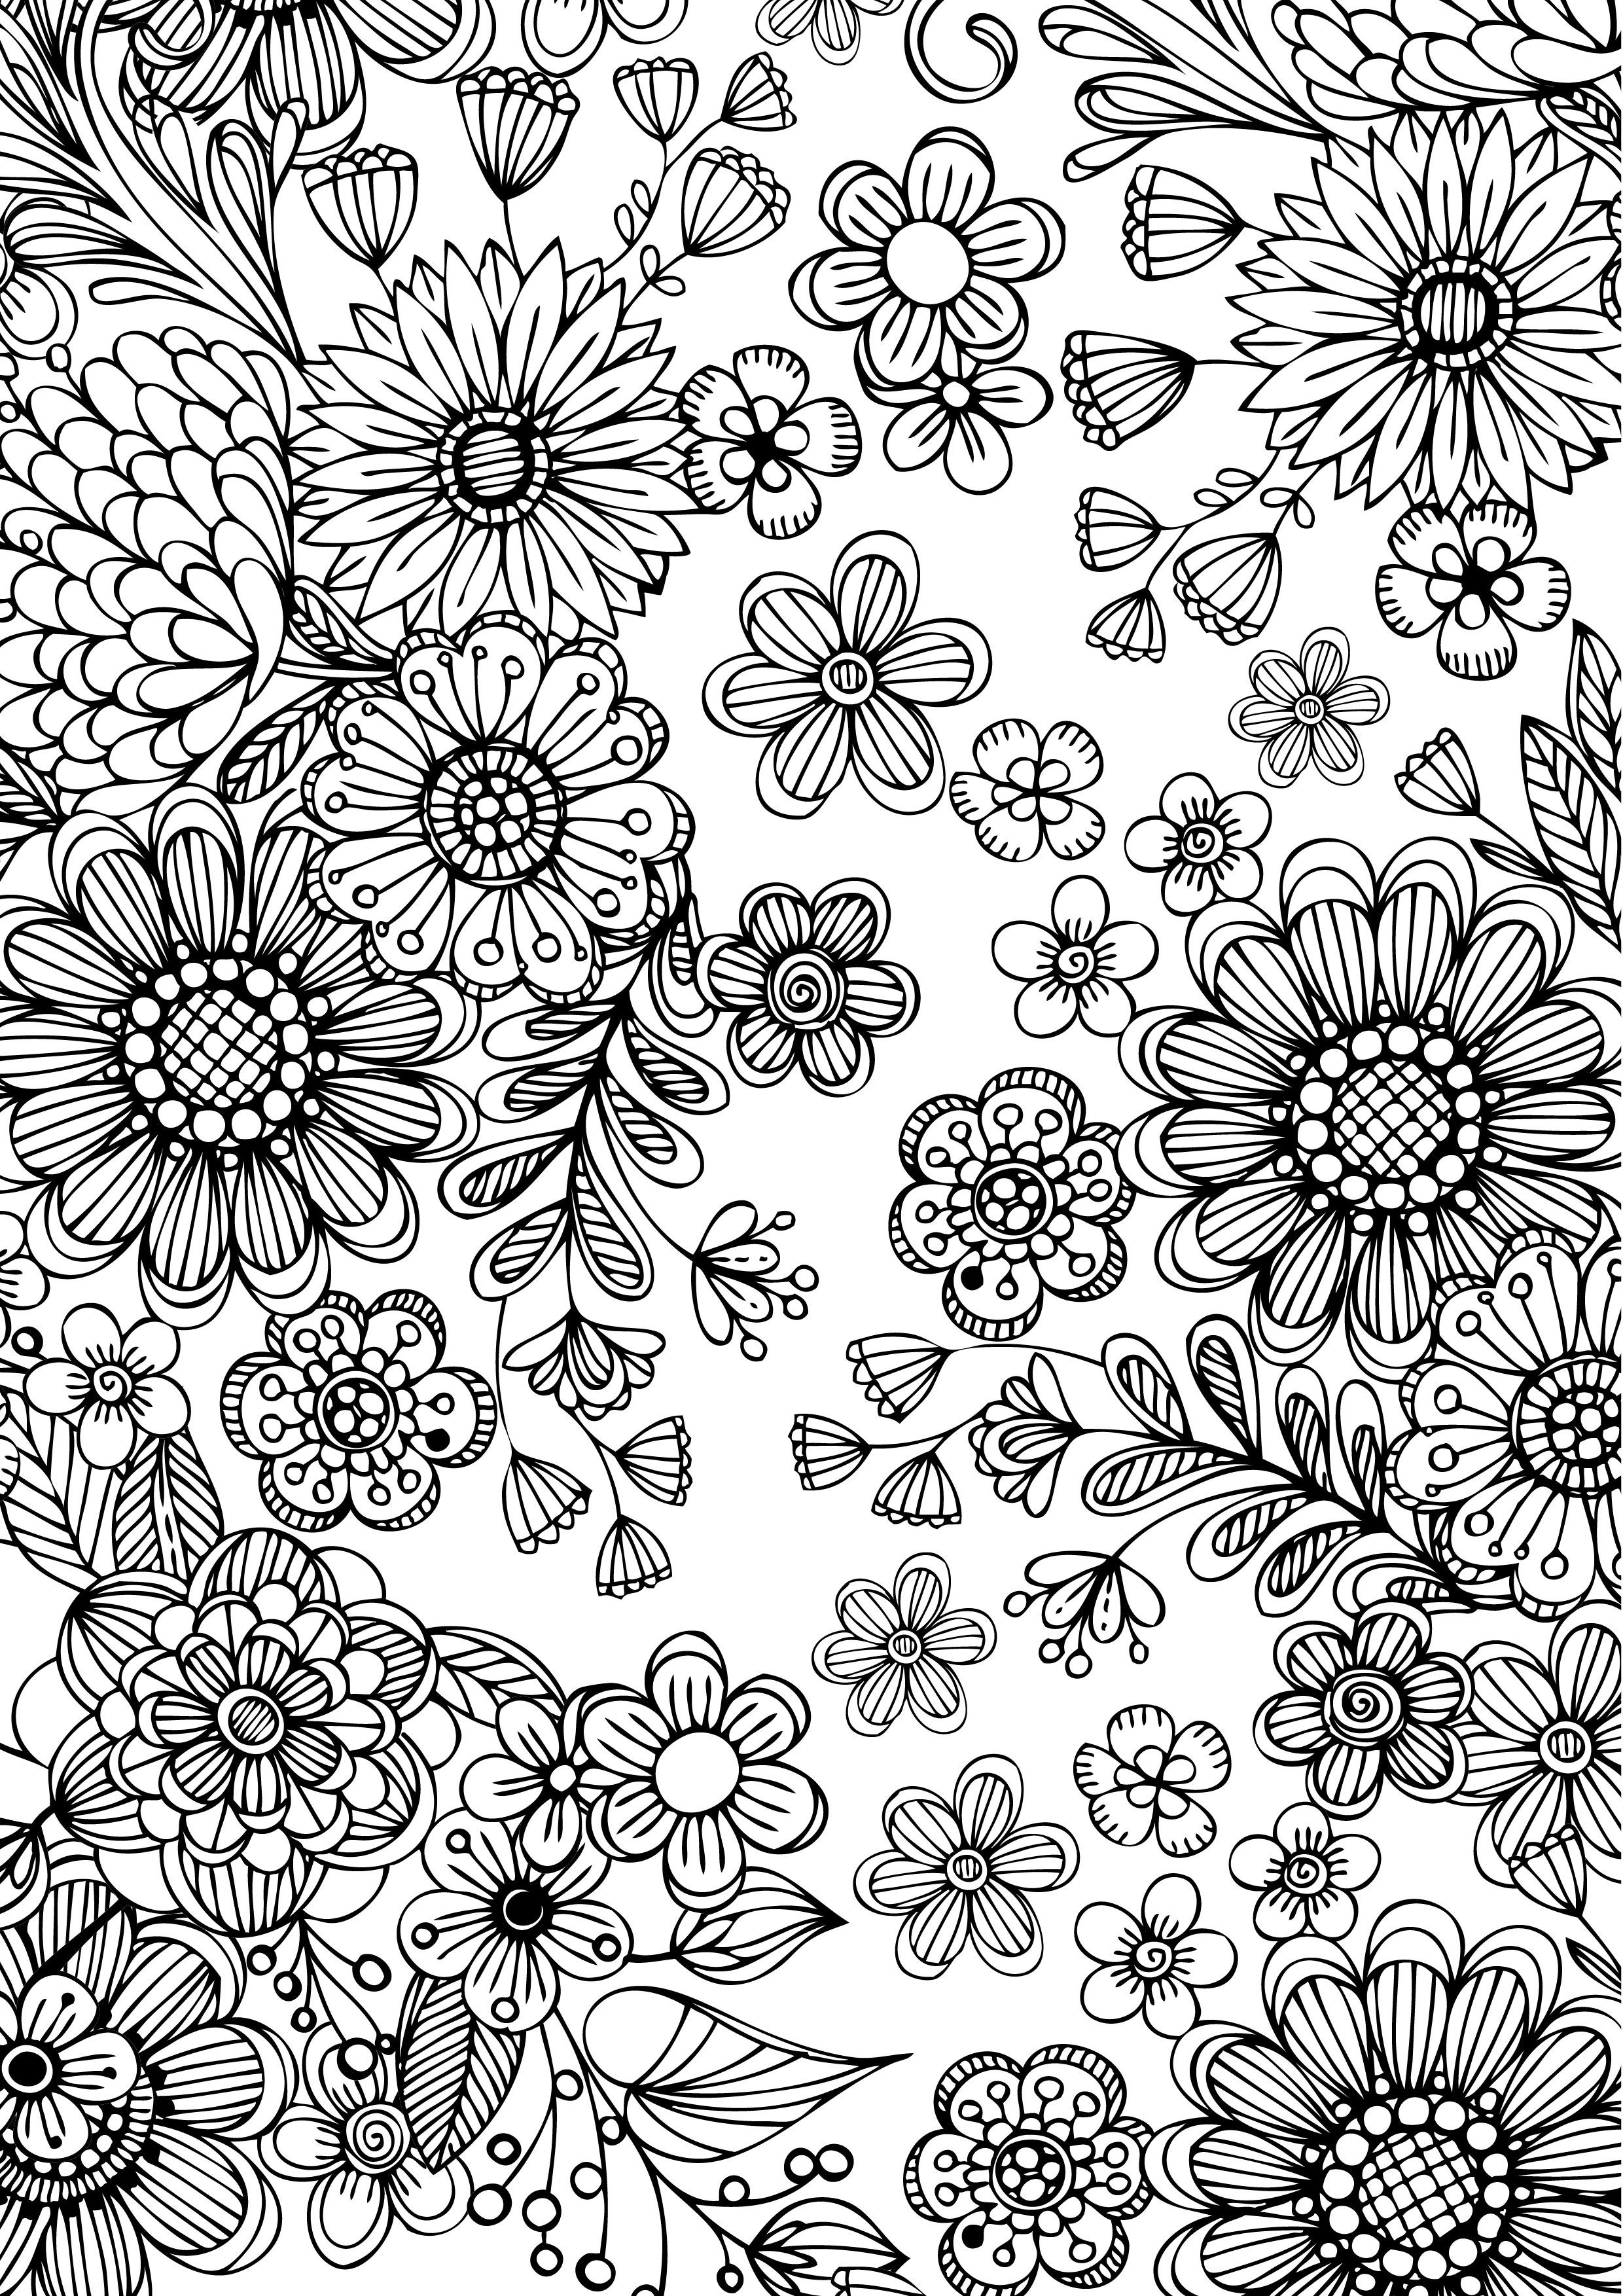 free coloring plate adult with spectrum noir floral coloring